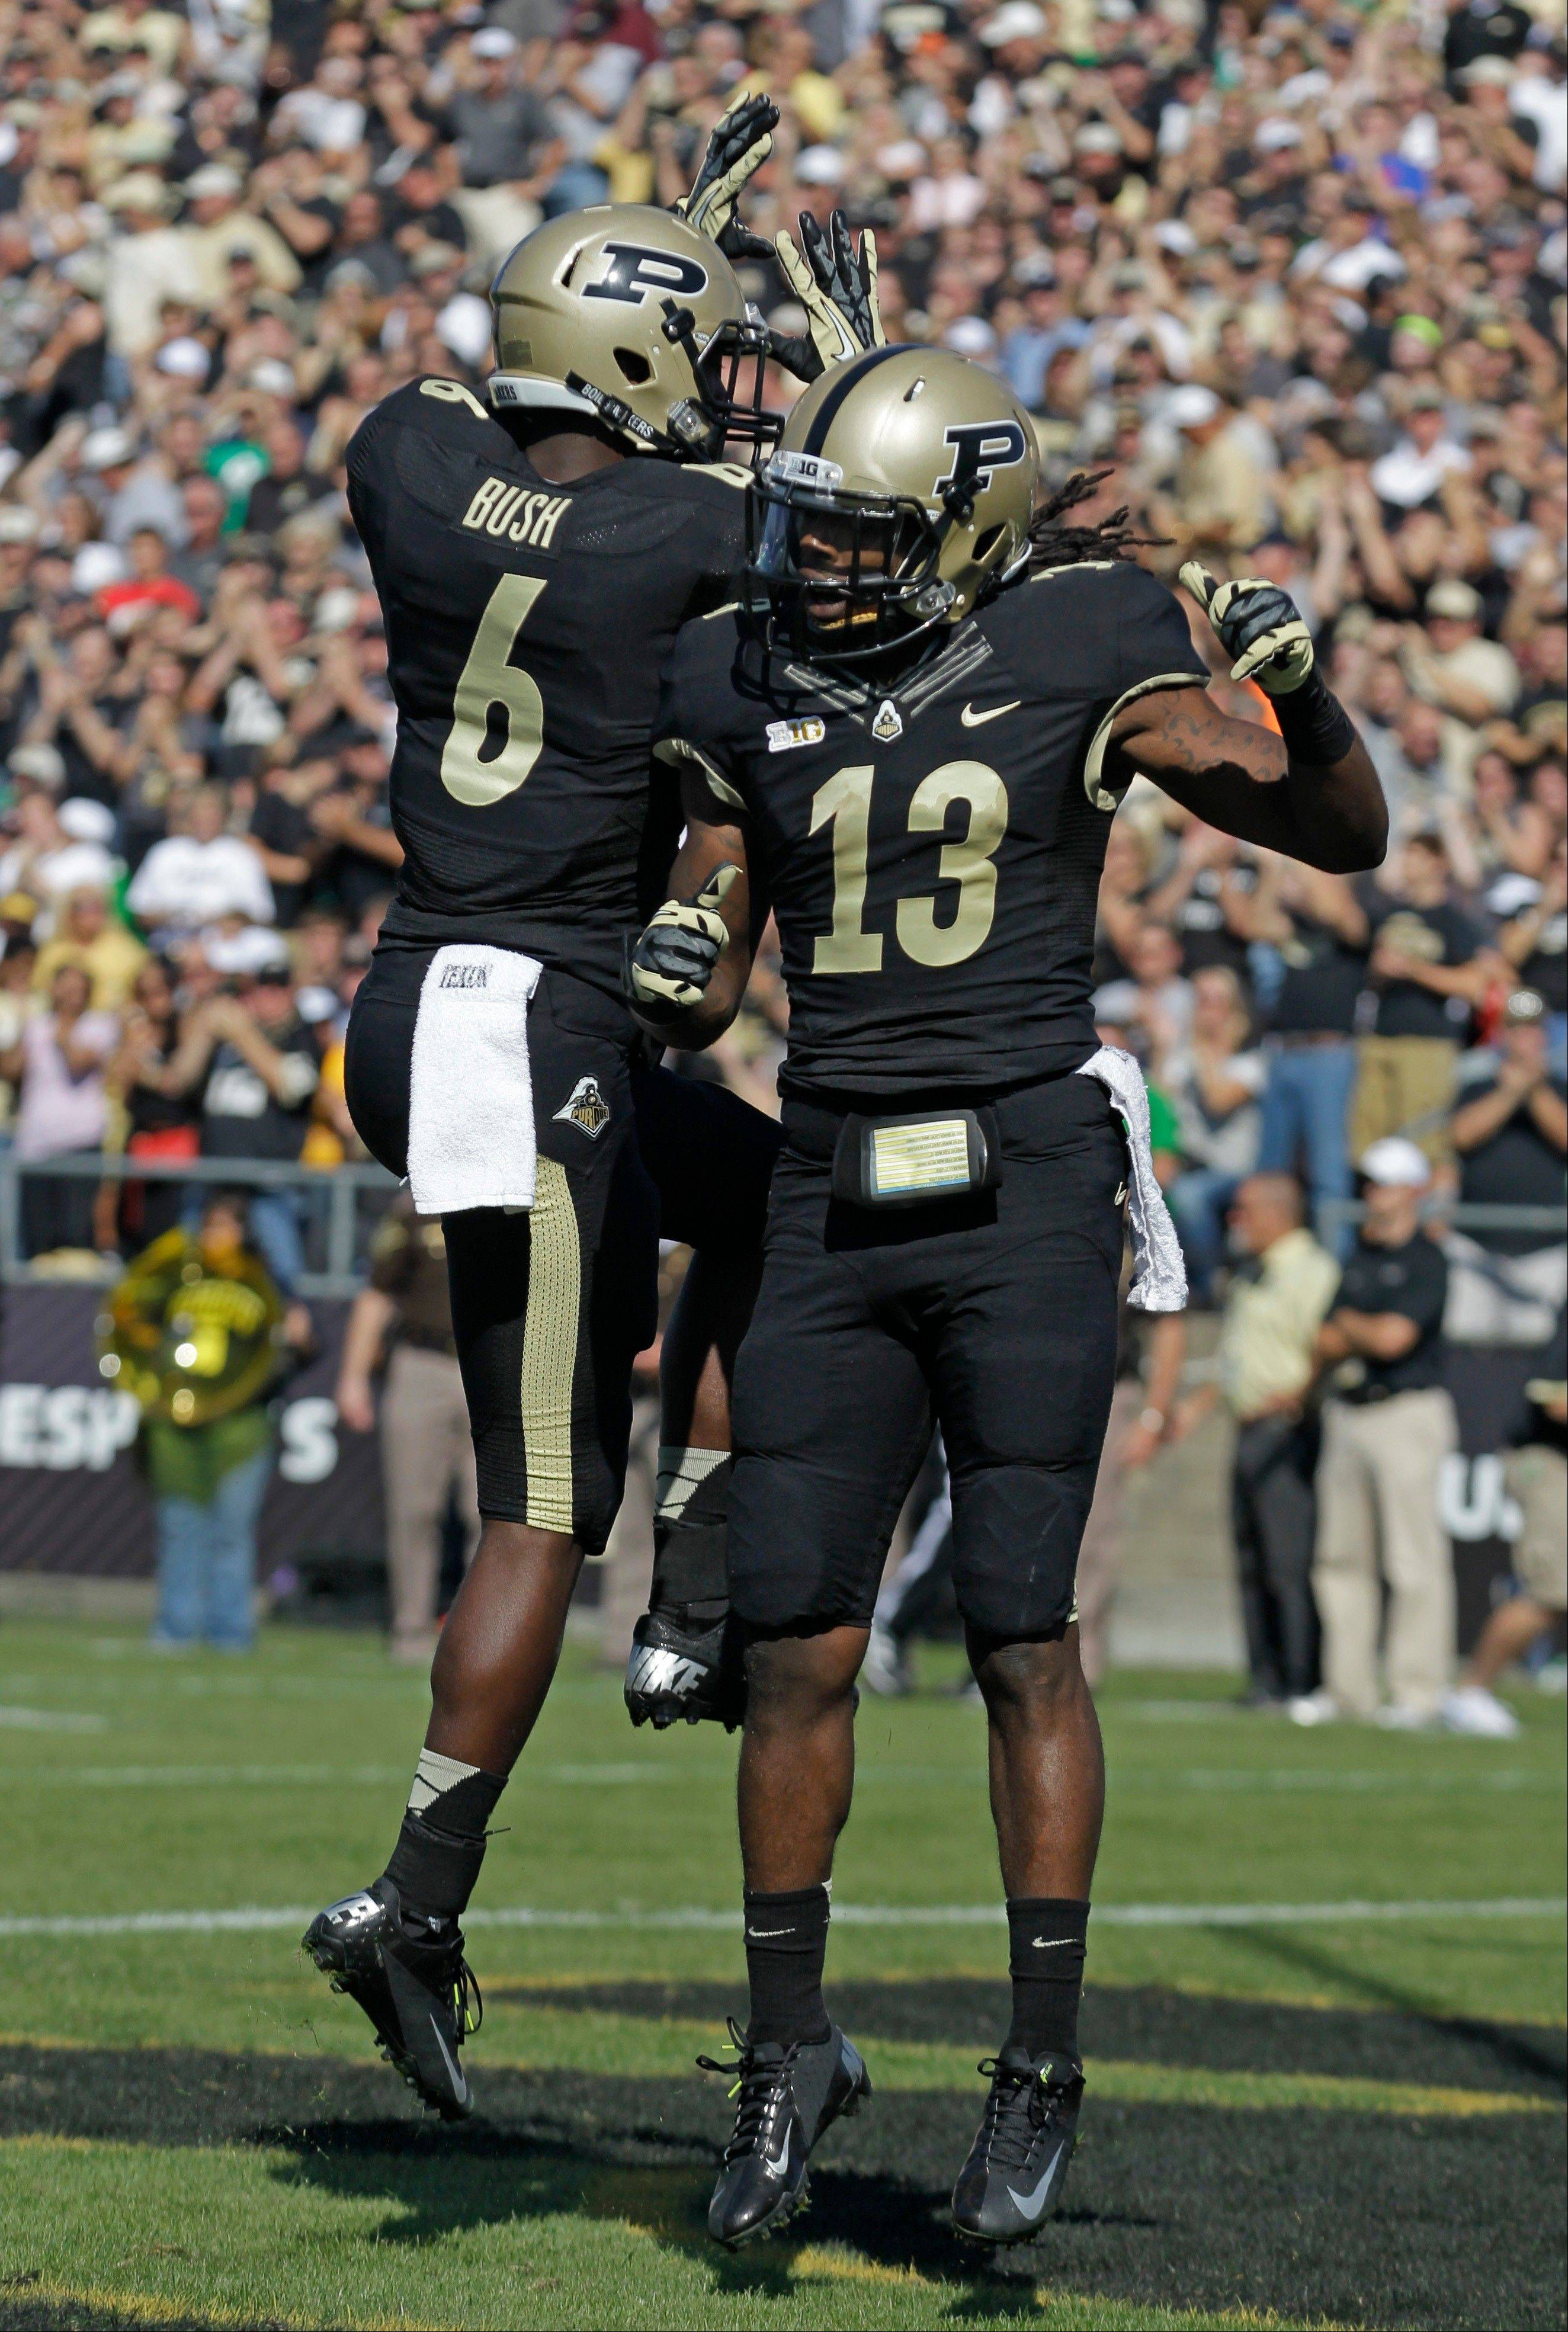 Purdue's Antavian Edison celebrates with Gary Bush after scoring a touchdown against Marshall last Saturday in West Lafayette, Ind.